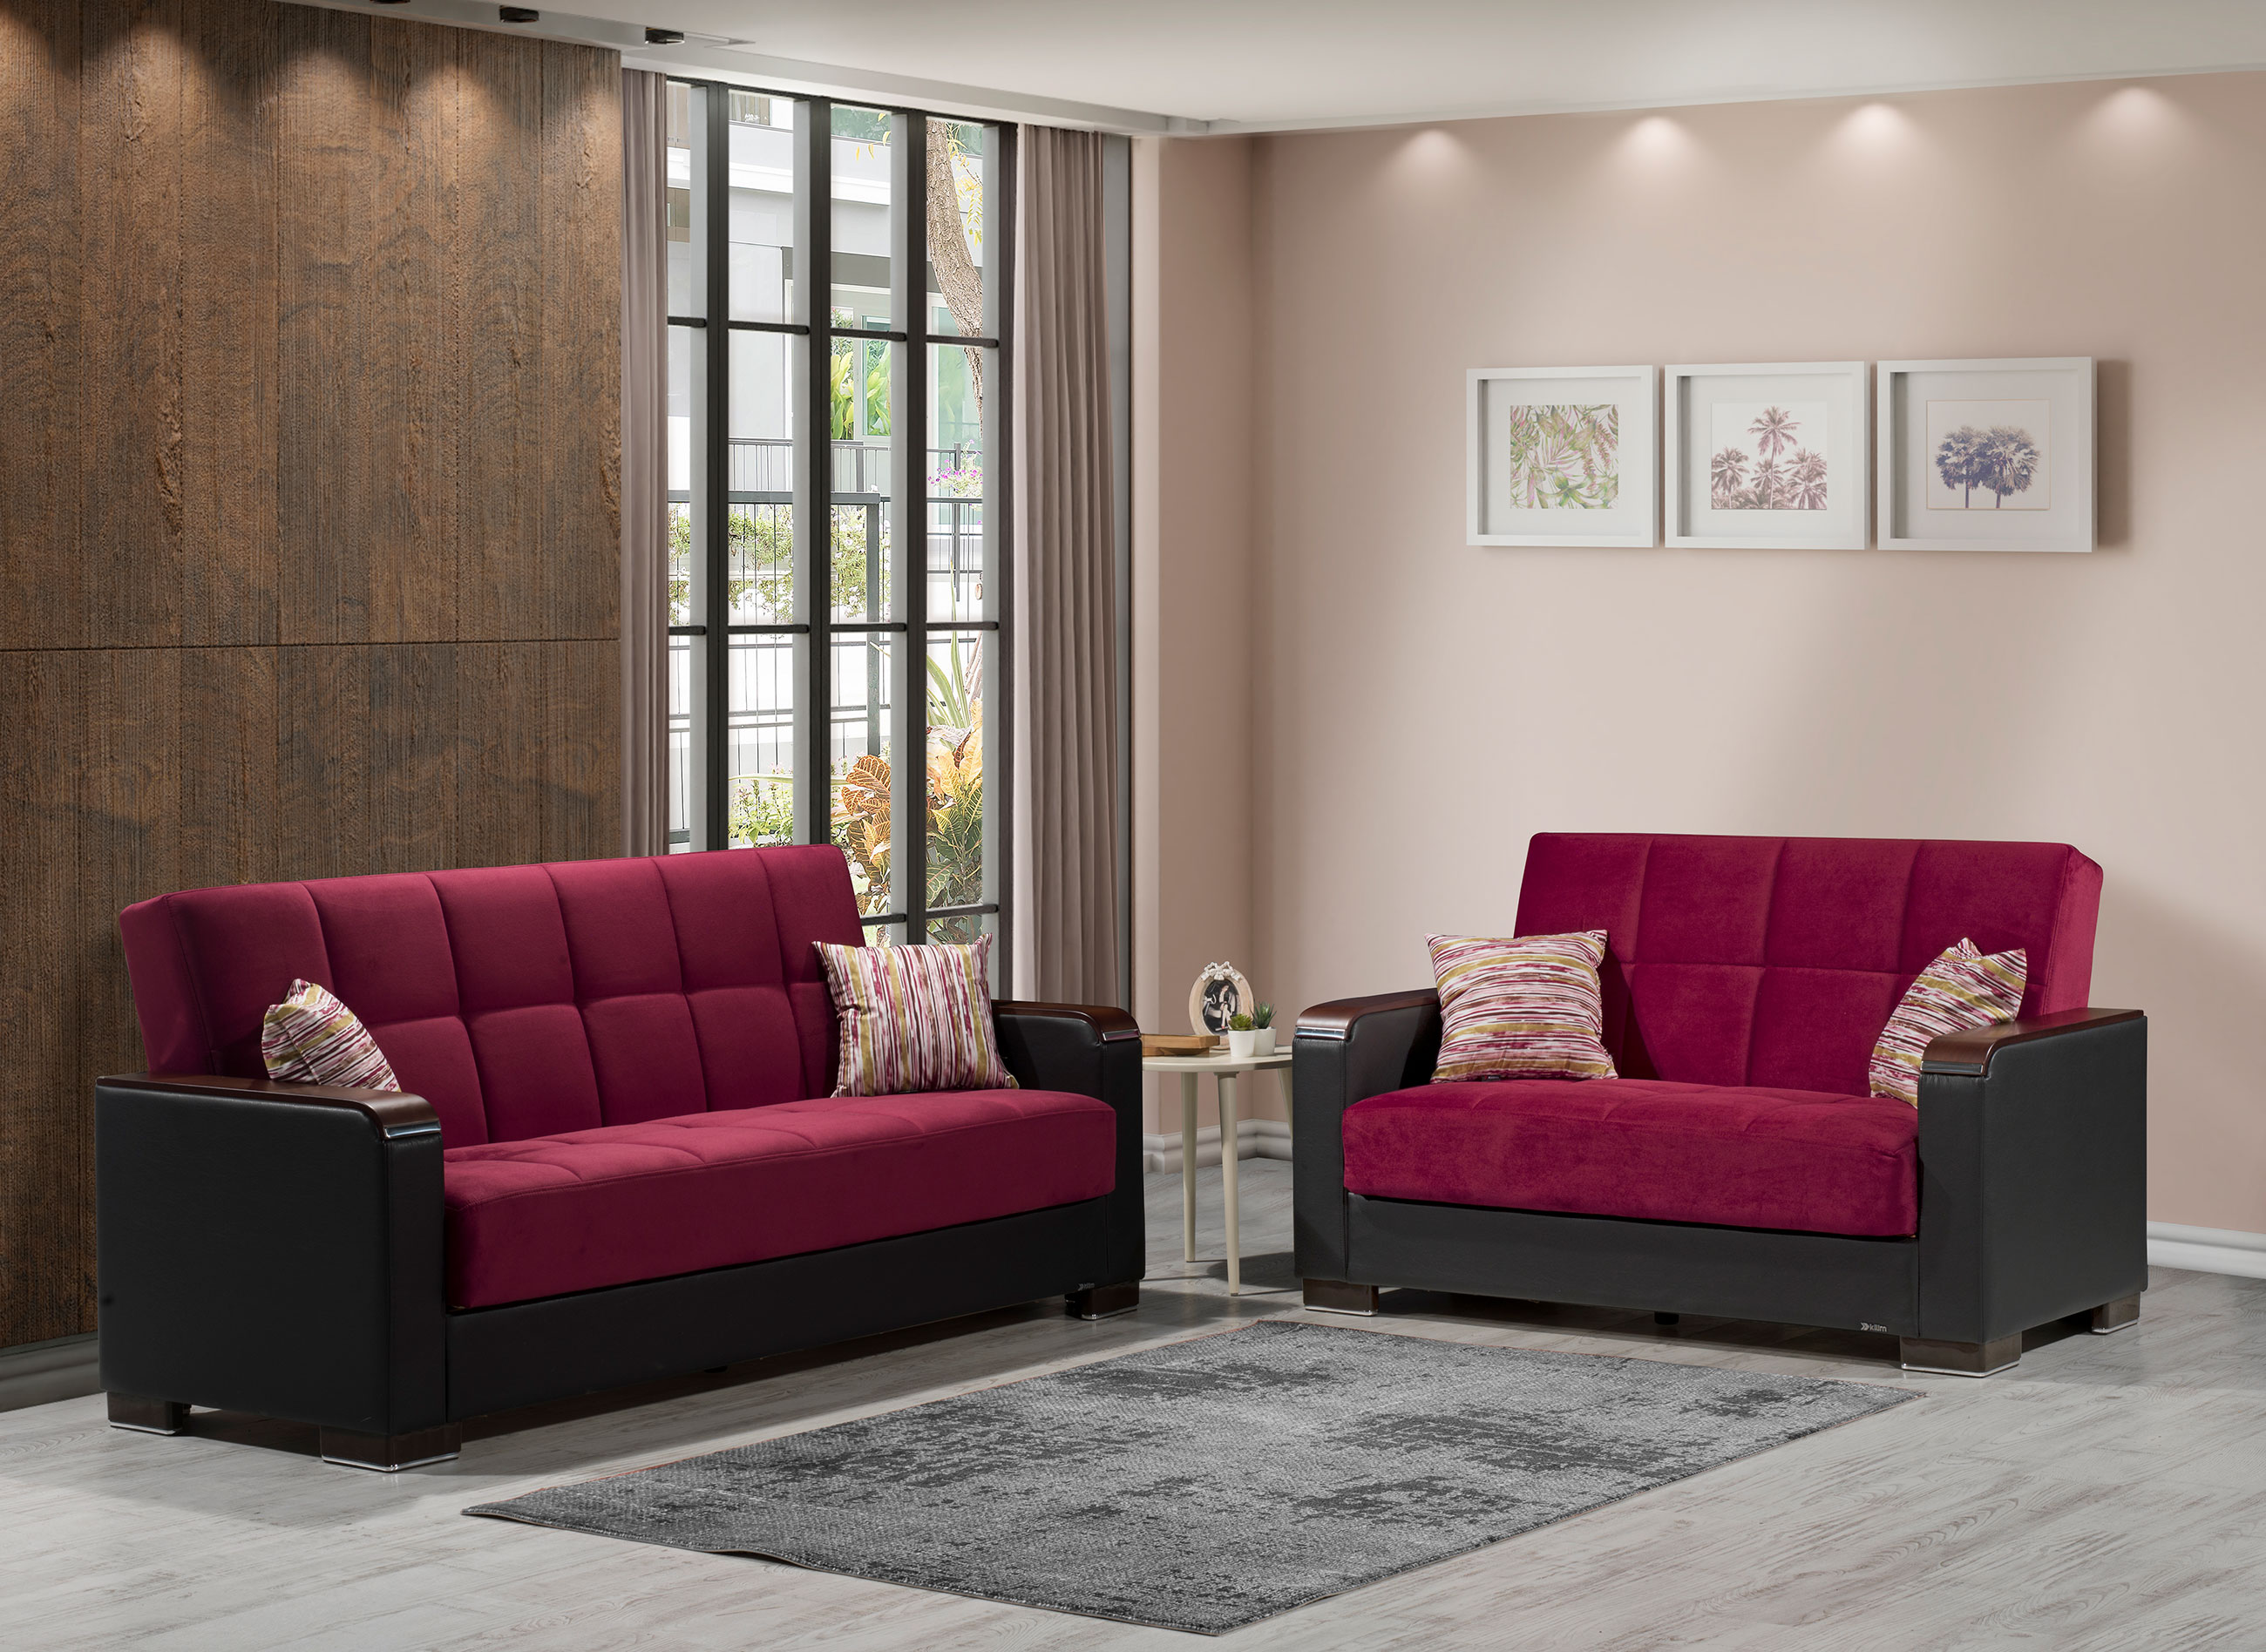 Armada X Burgundy Sofa Bed by Casamode